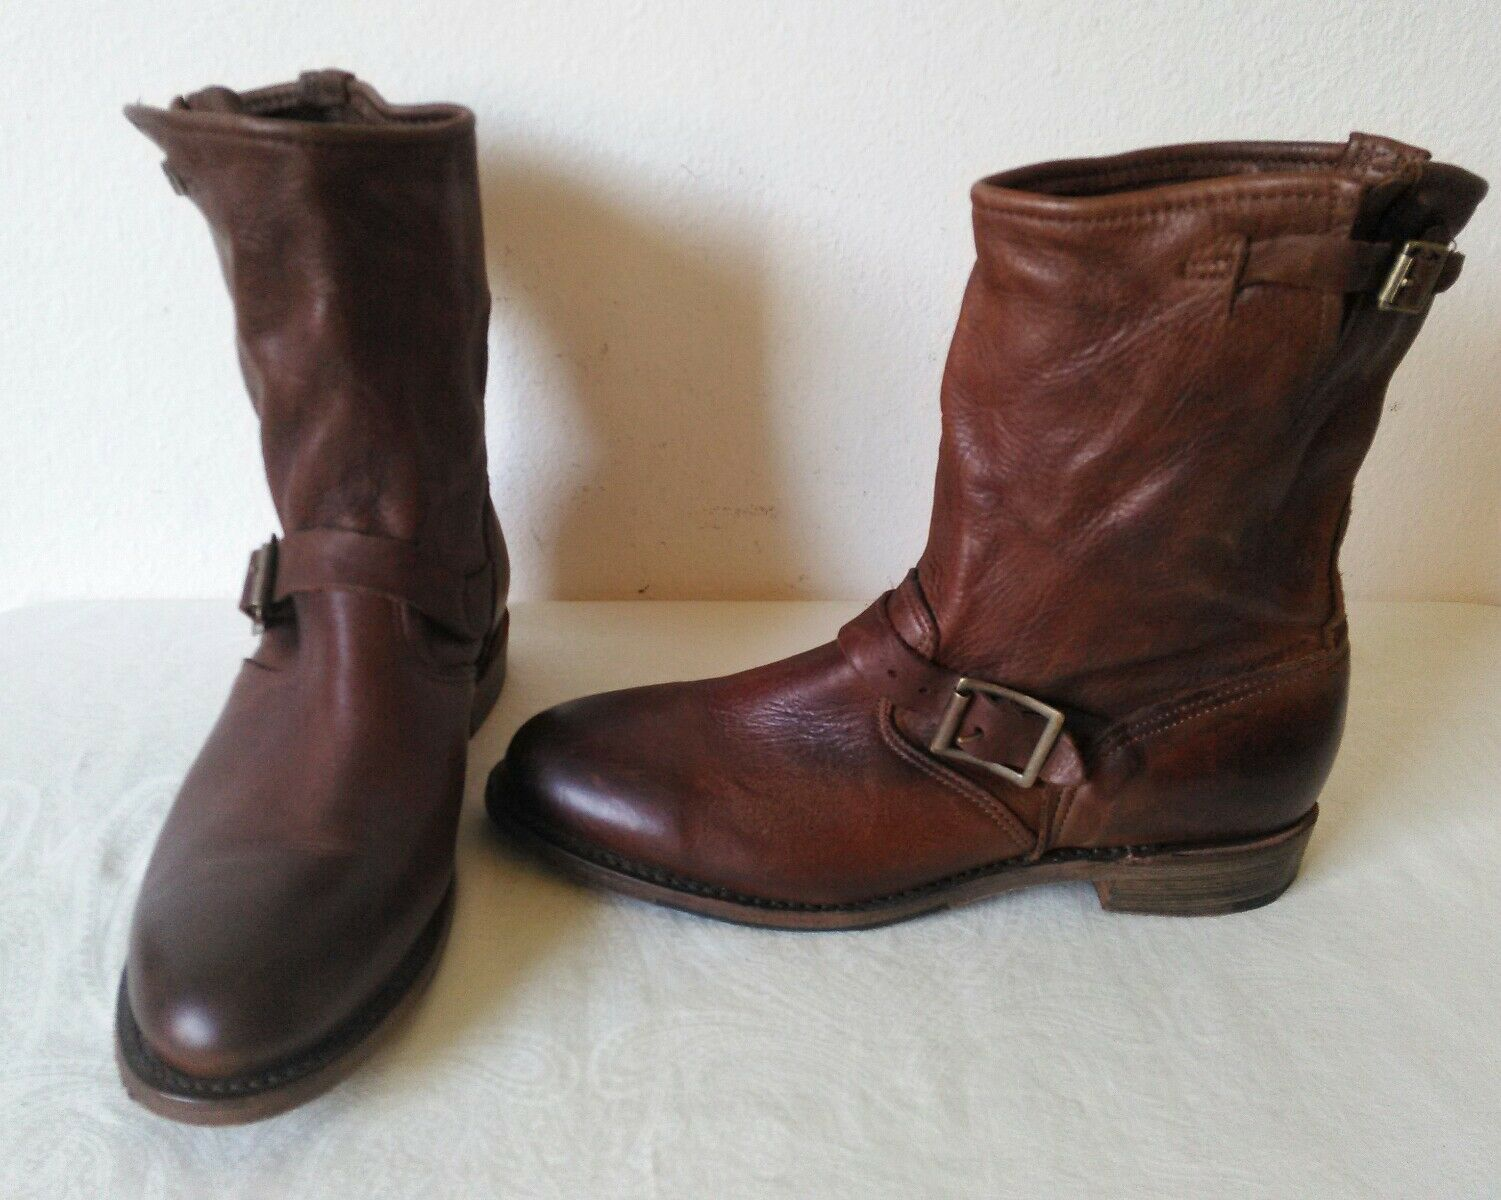 New High quality Vintage schuhe Company women's Braun leather ankle Stiefel Size 9 M